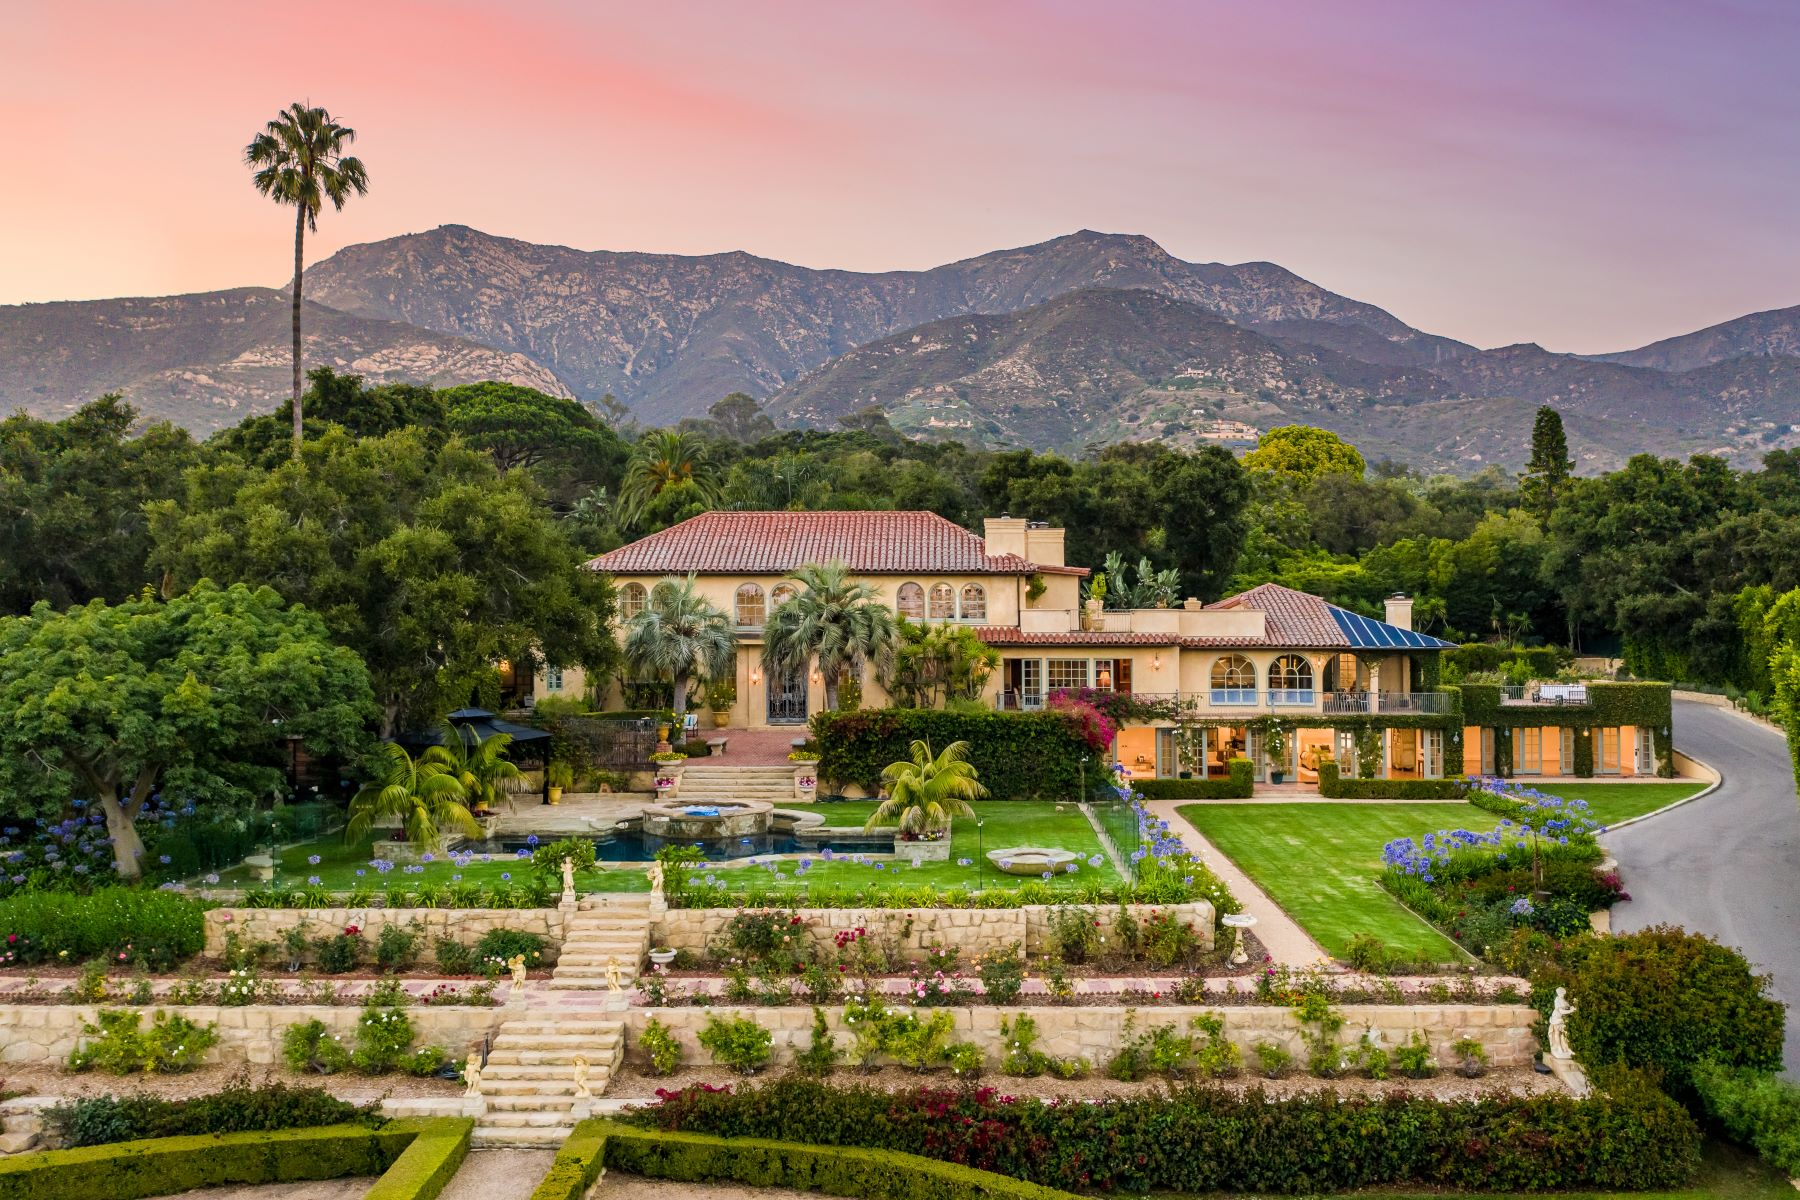 Property for Sale at 1954 East Valley Rd 1954 East Valley Road Montecito, California 93108 United States